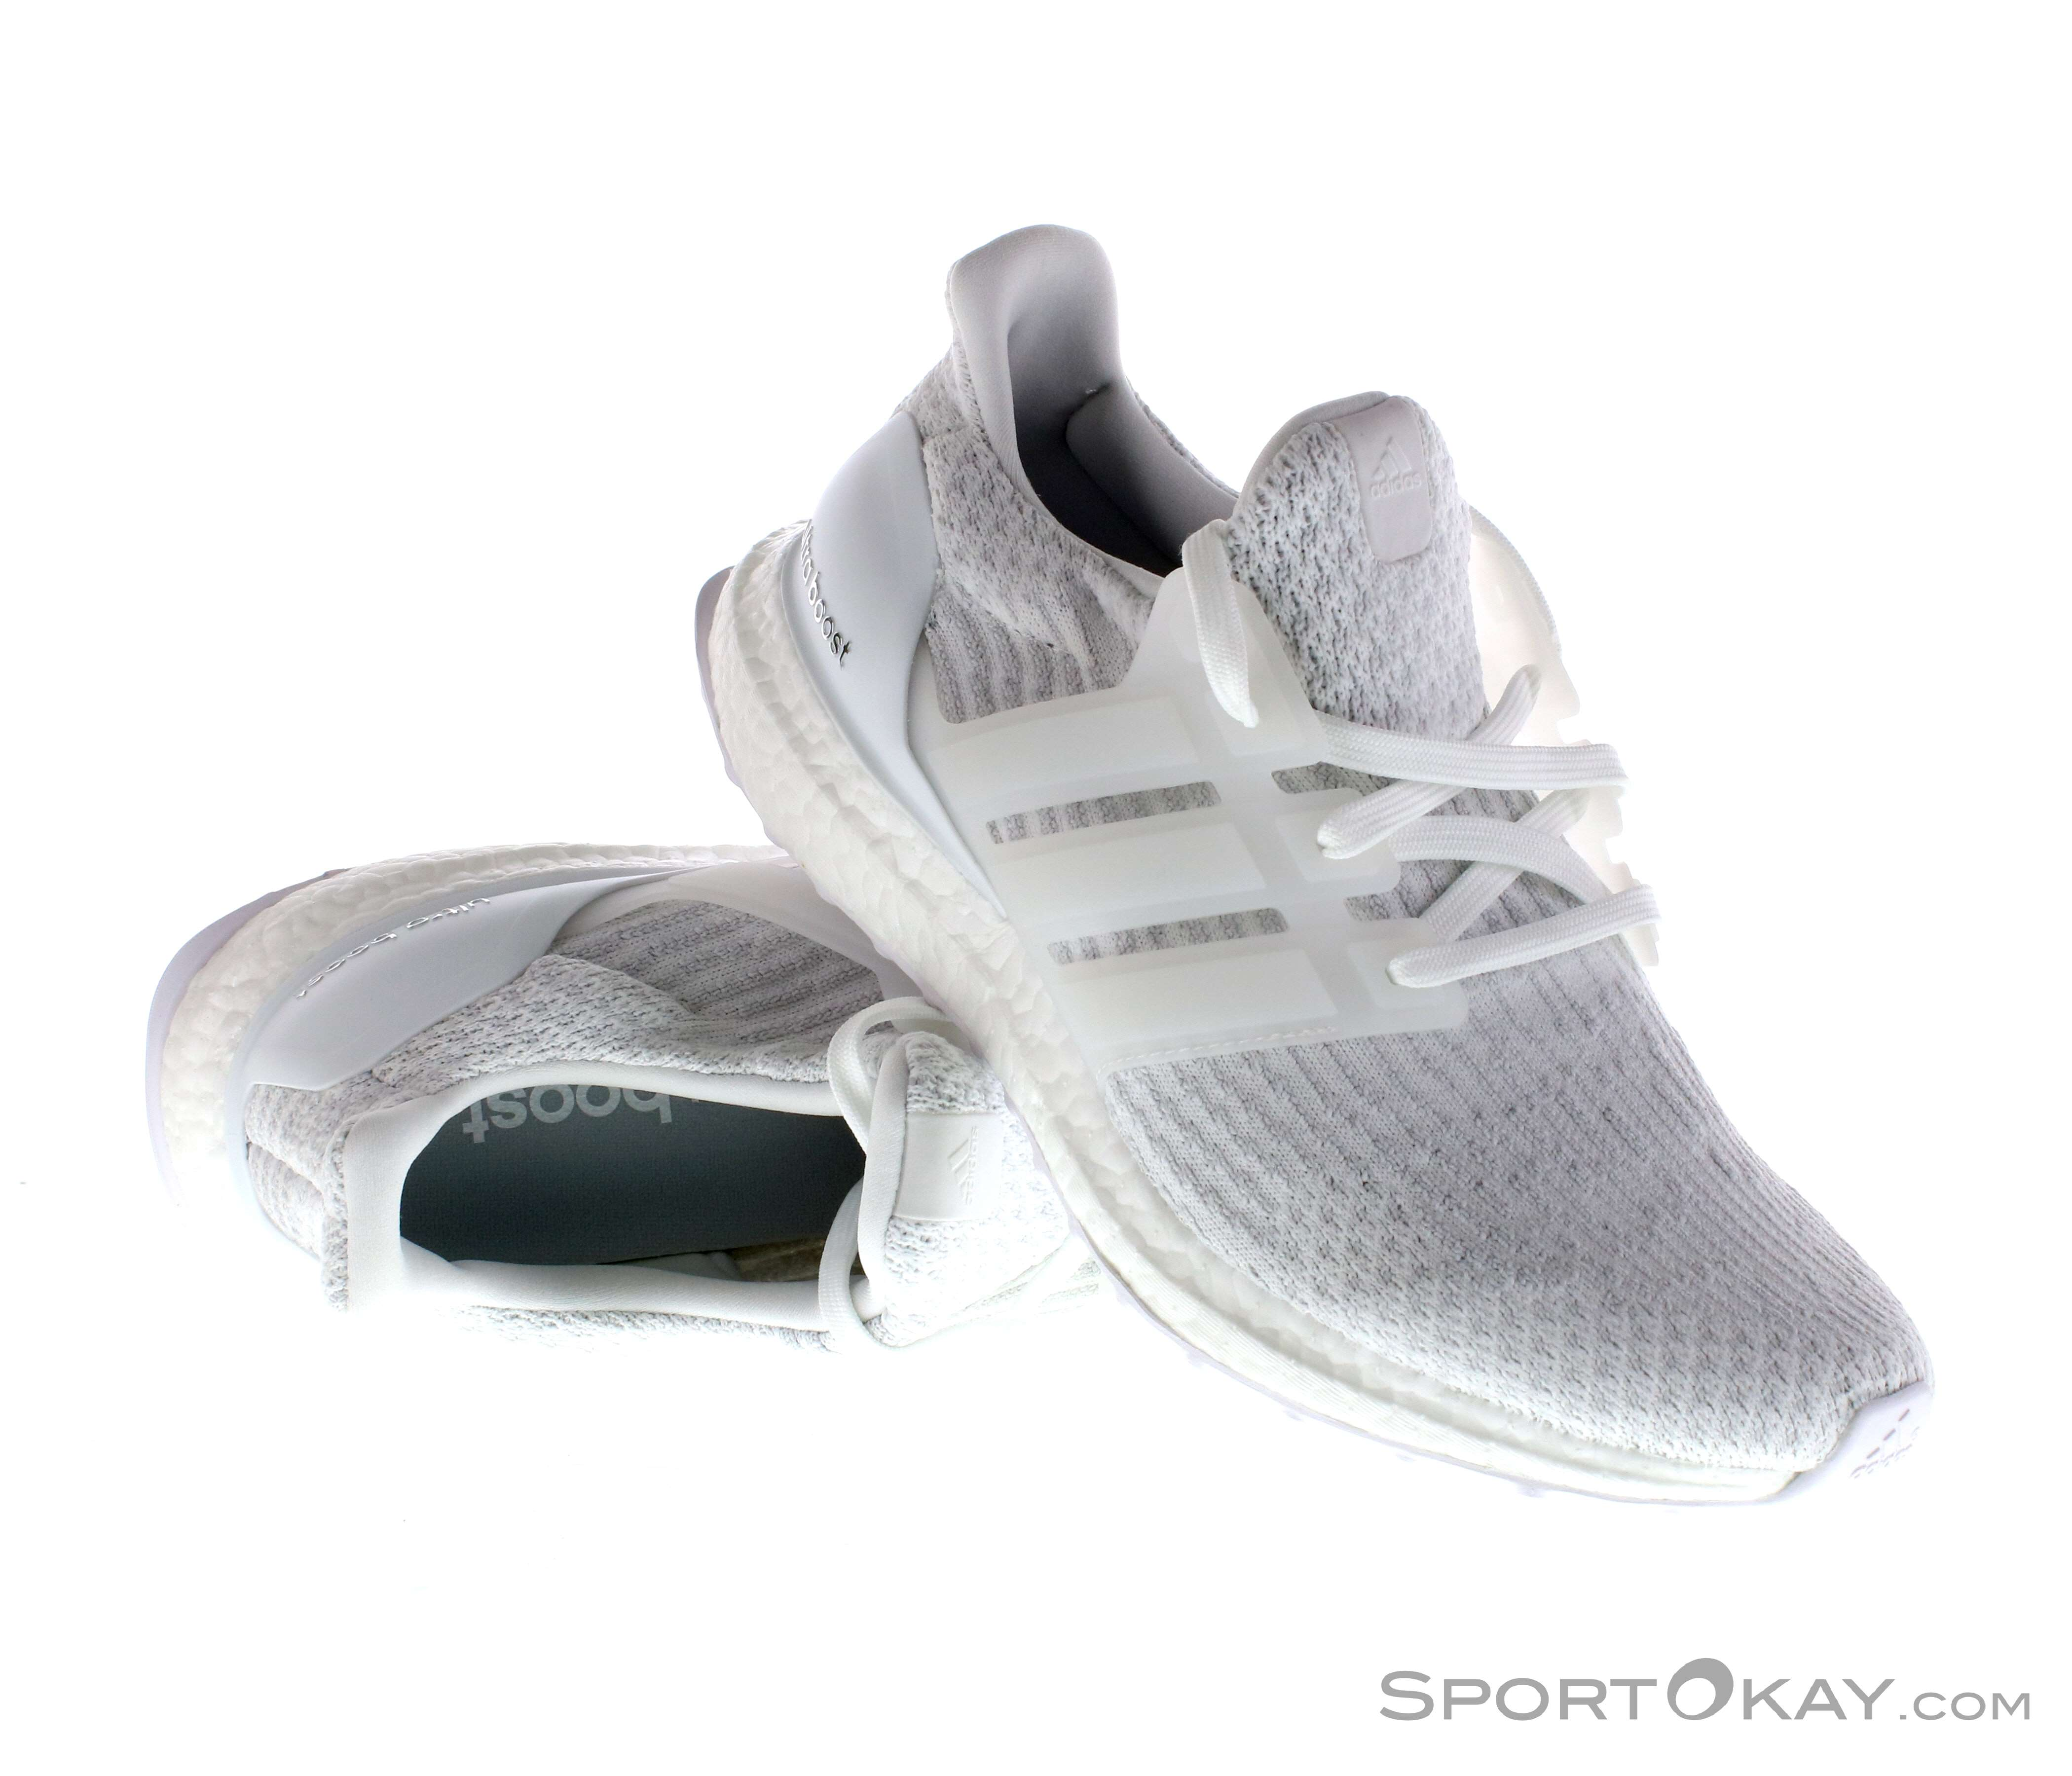 96f569d8caf9a adidas Ultra Boost Mens Running Shoes - Running Shoes - Running ...